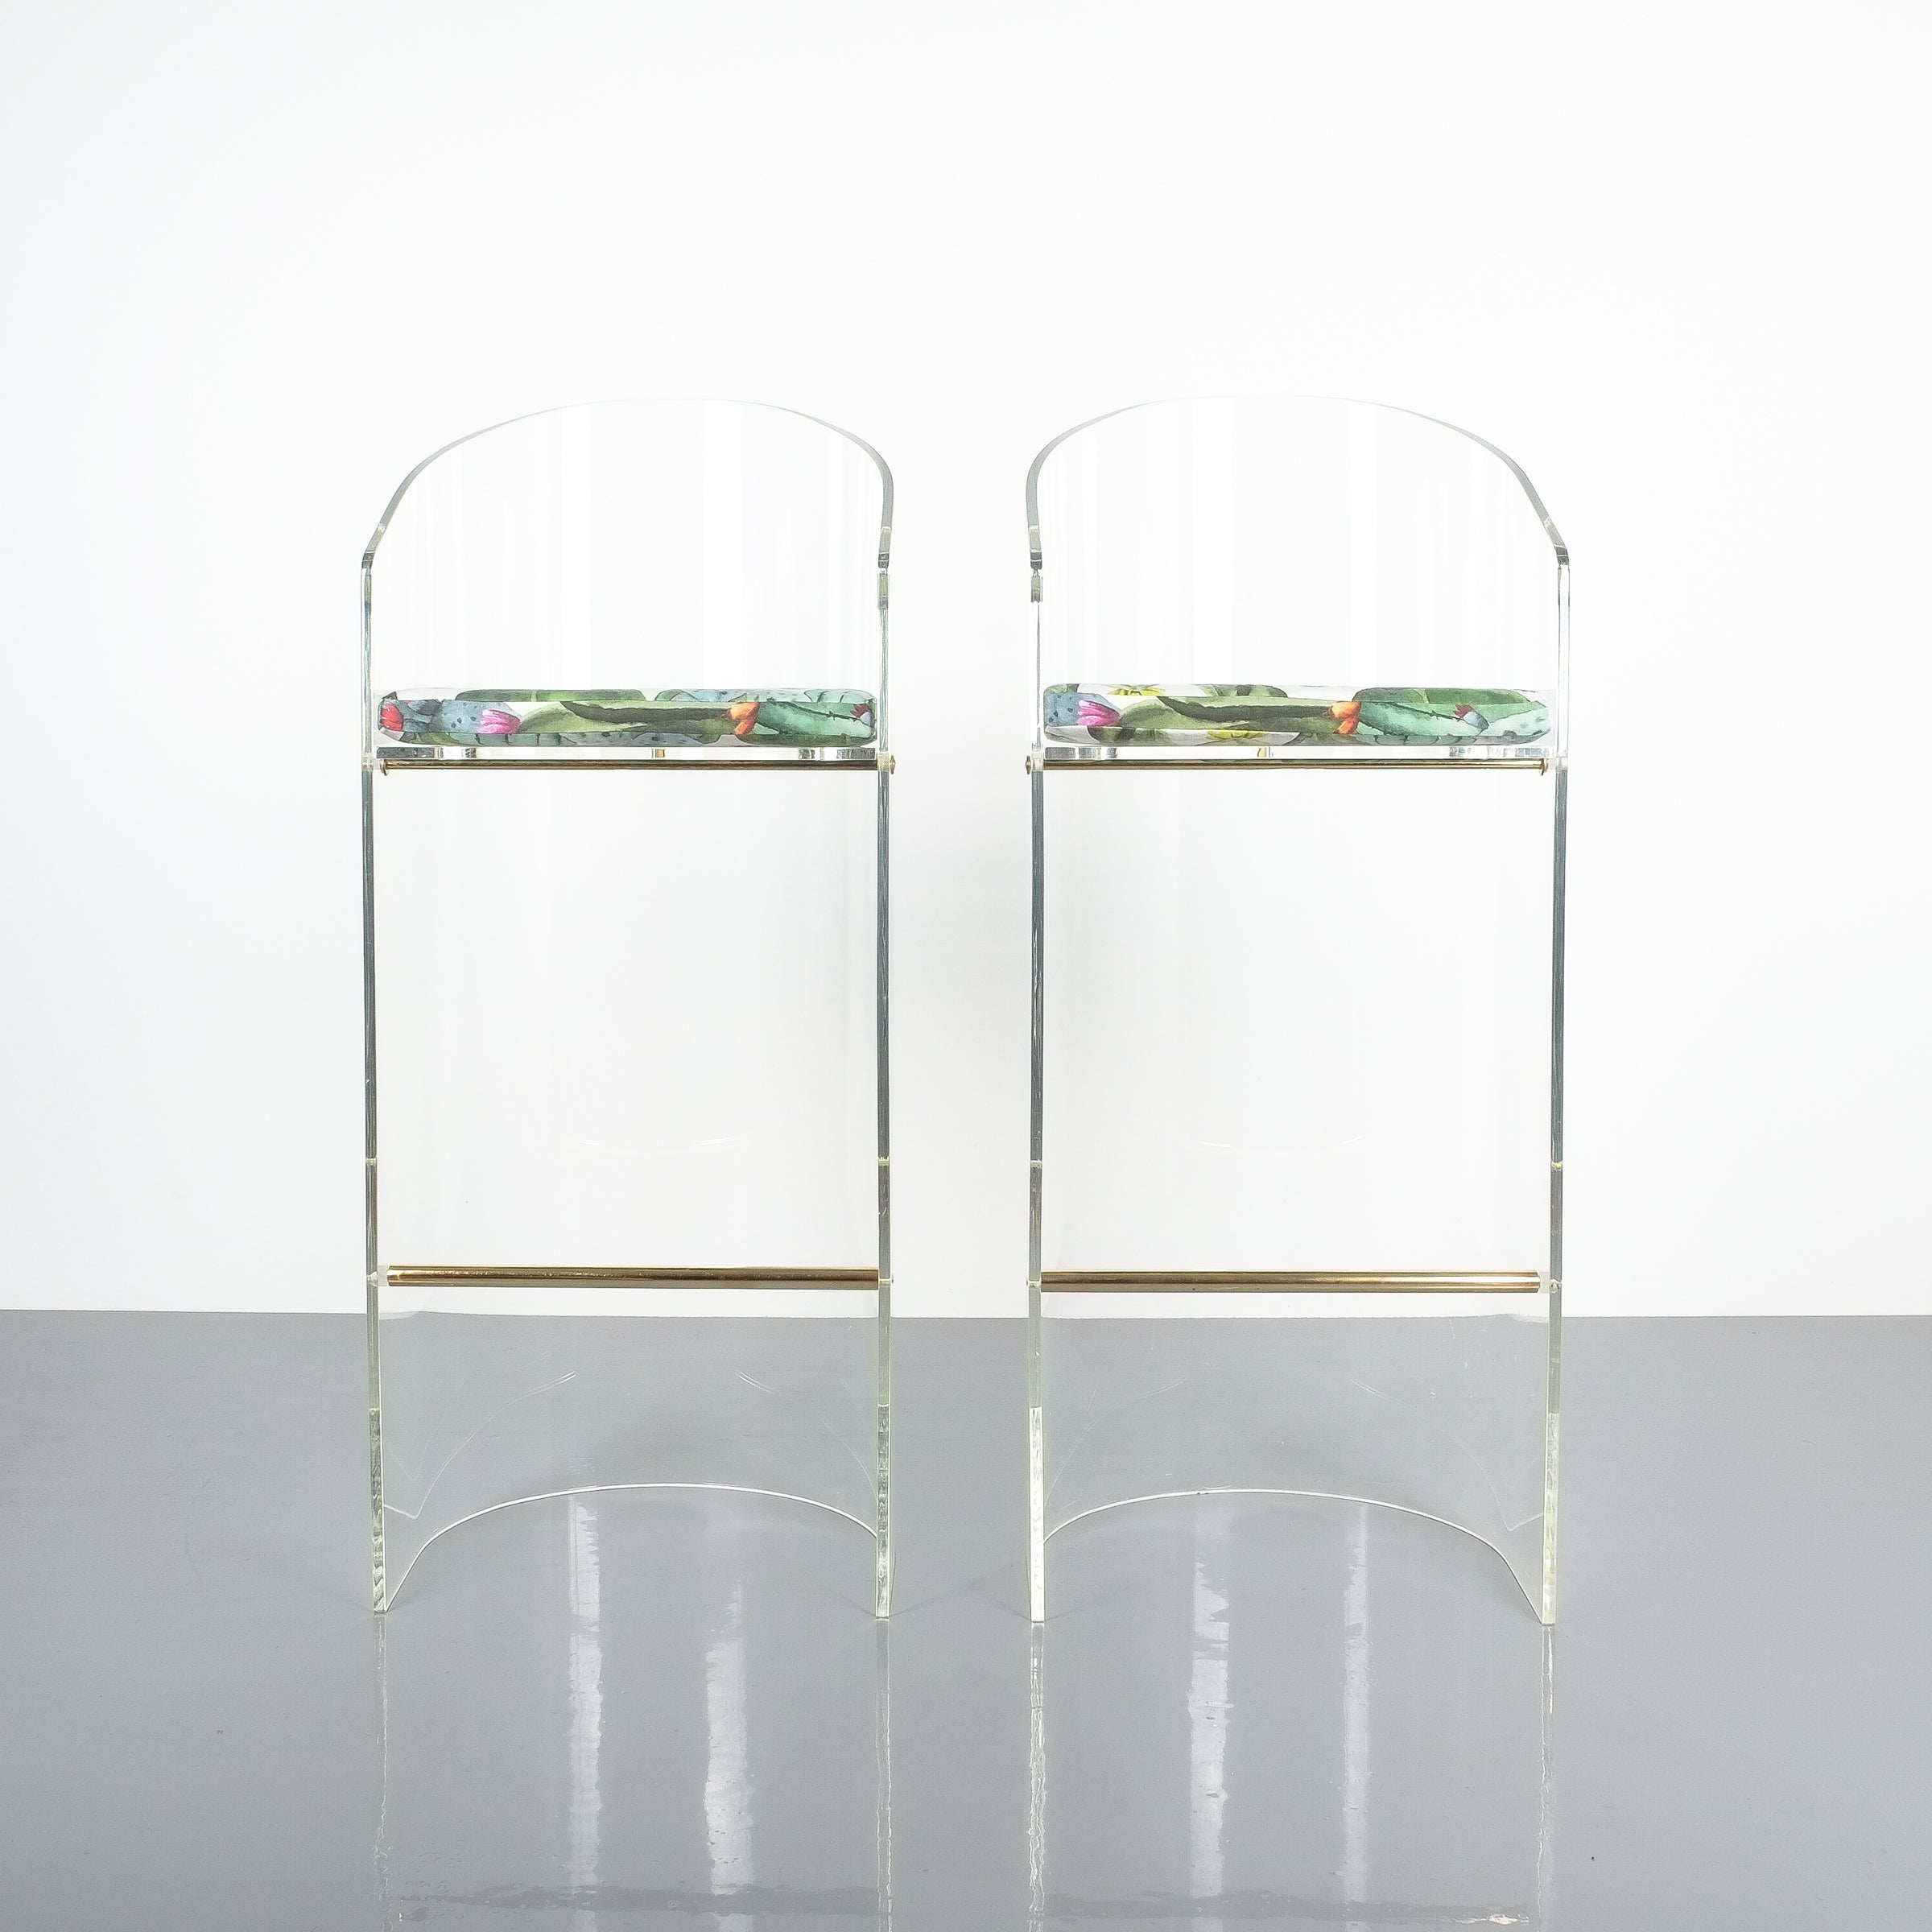 Pair of lucite brass bar stools style charles hollis jones 1960 for sale at 1stdibs